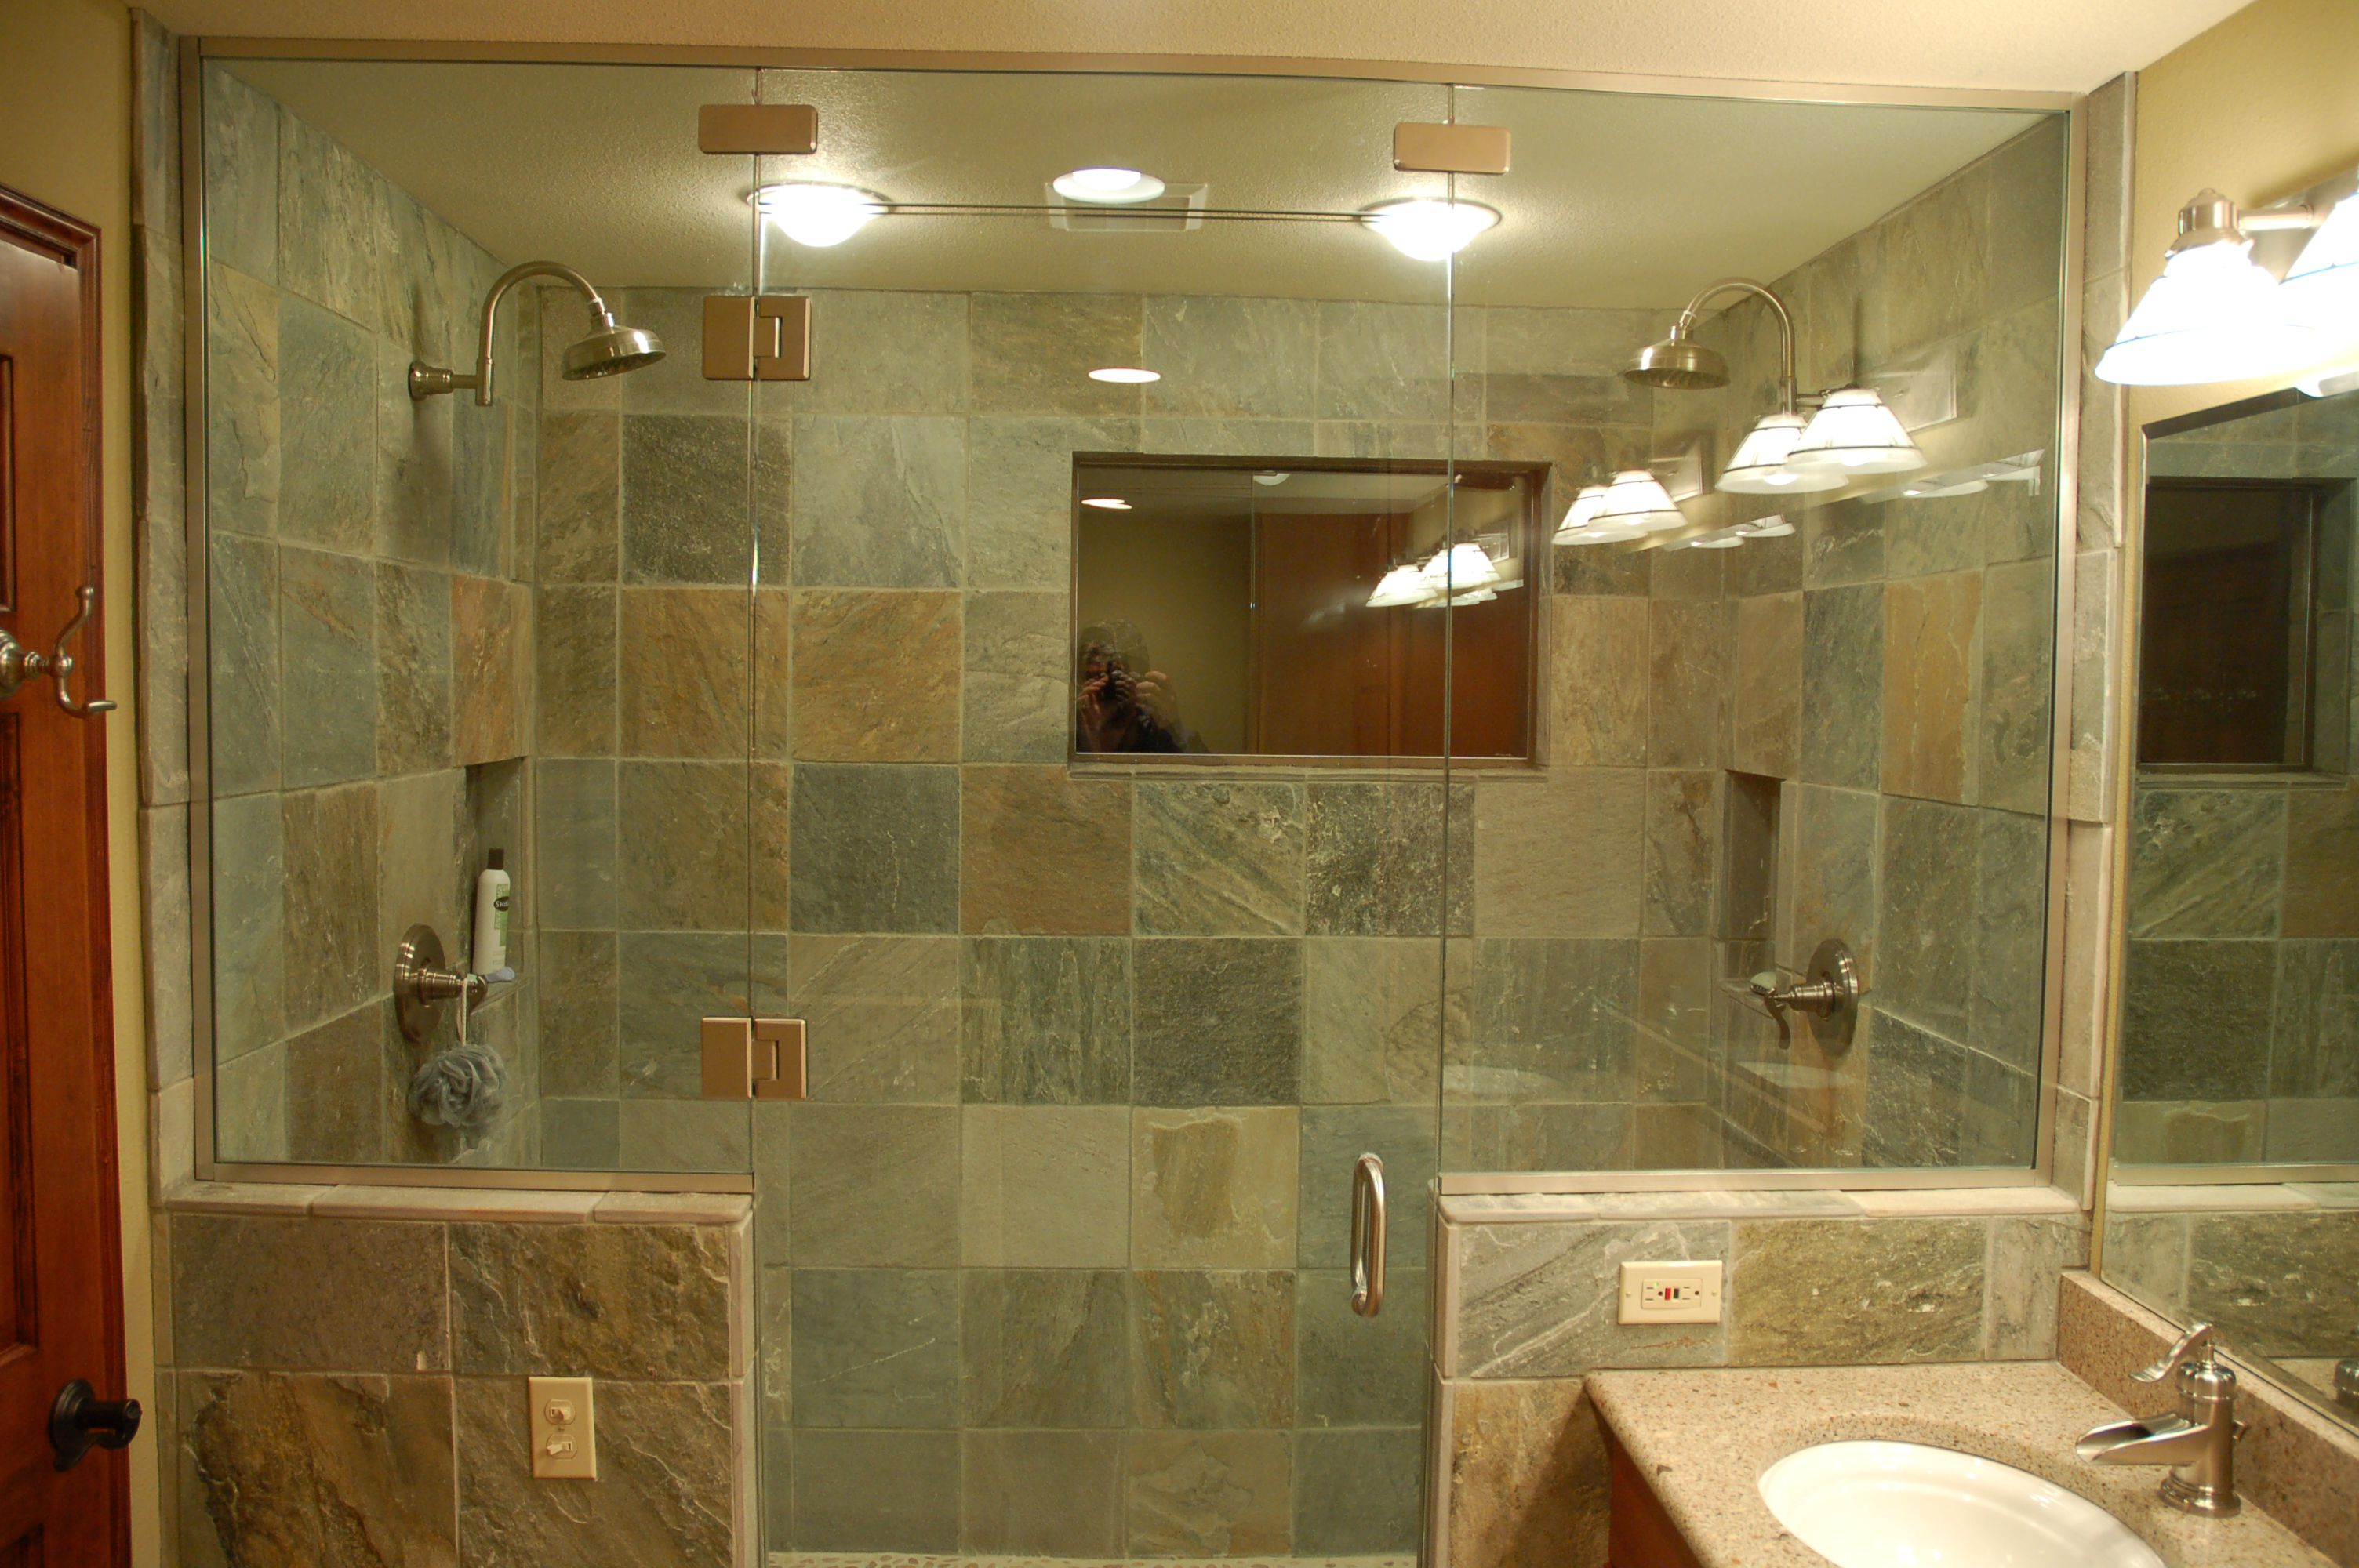 Clear Glass Door and Wall Completing Old Fashioned Shower Space using Stone Tile Shower Ideas